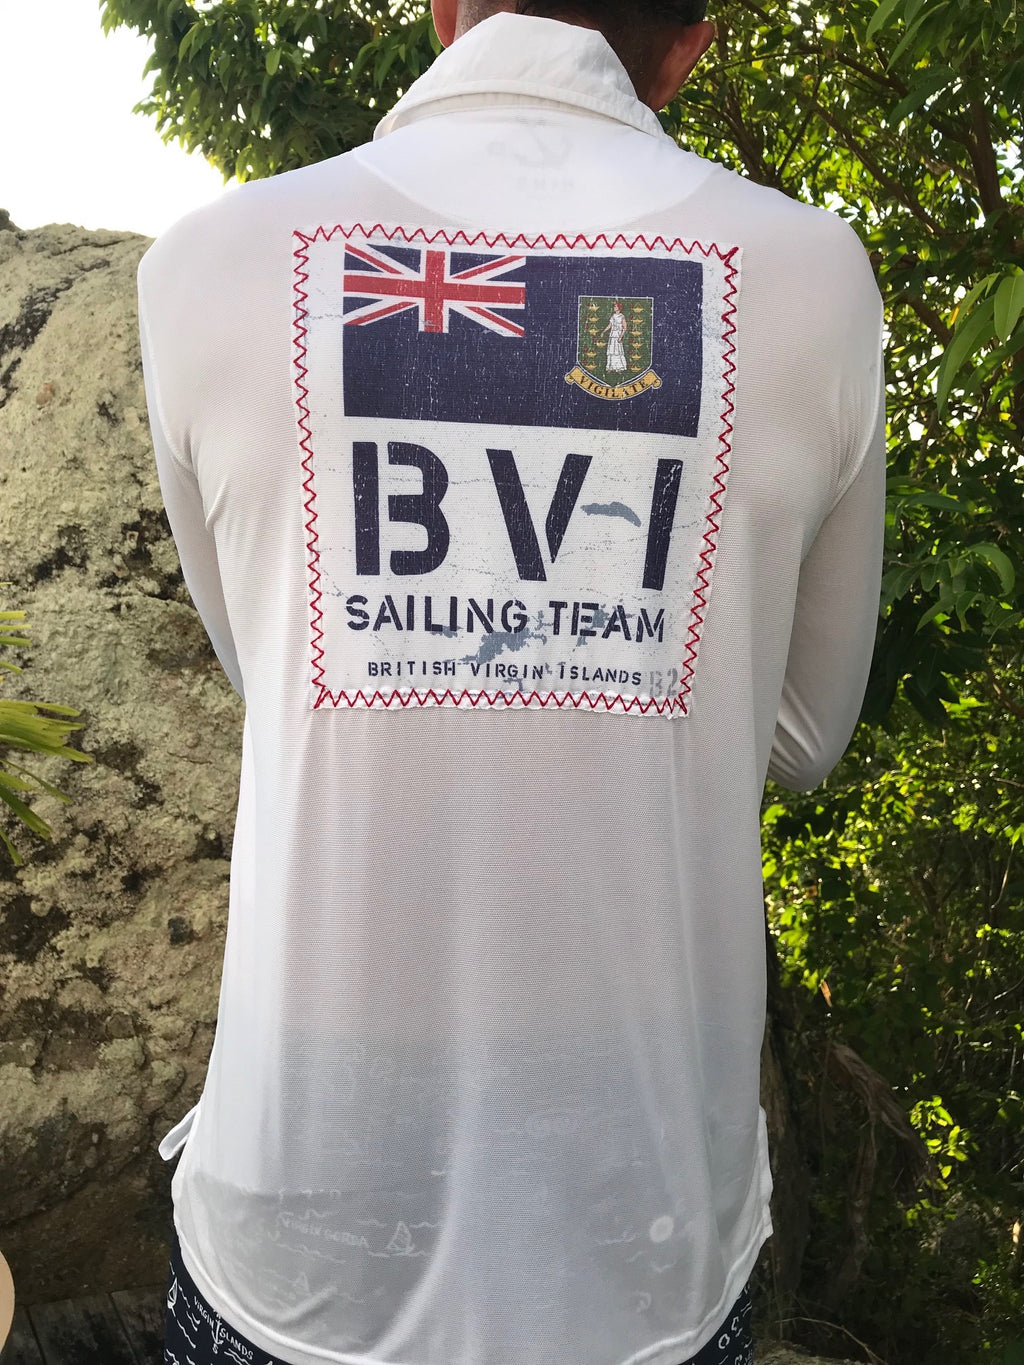 R3 BVI Sailing Team UPF50 Shirt - white